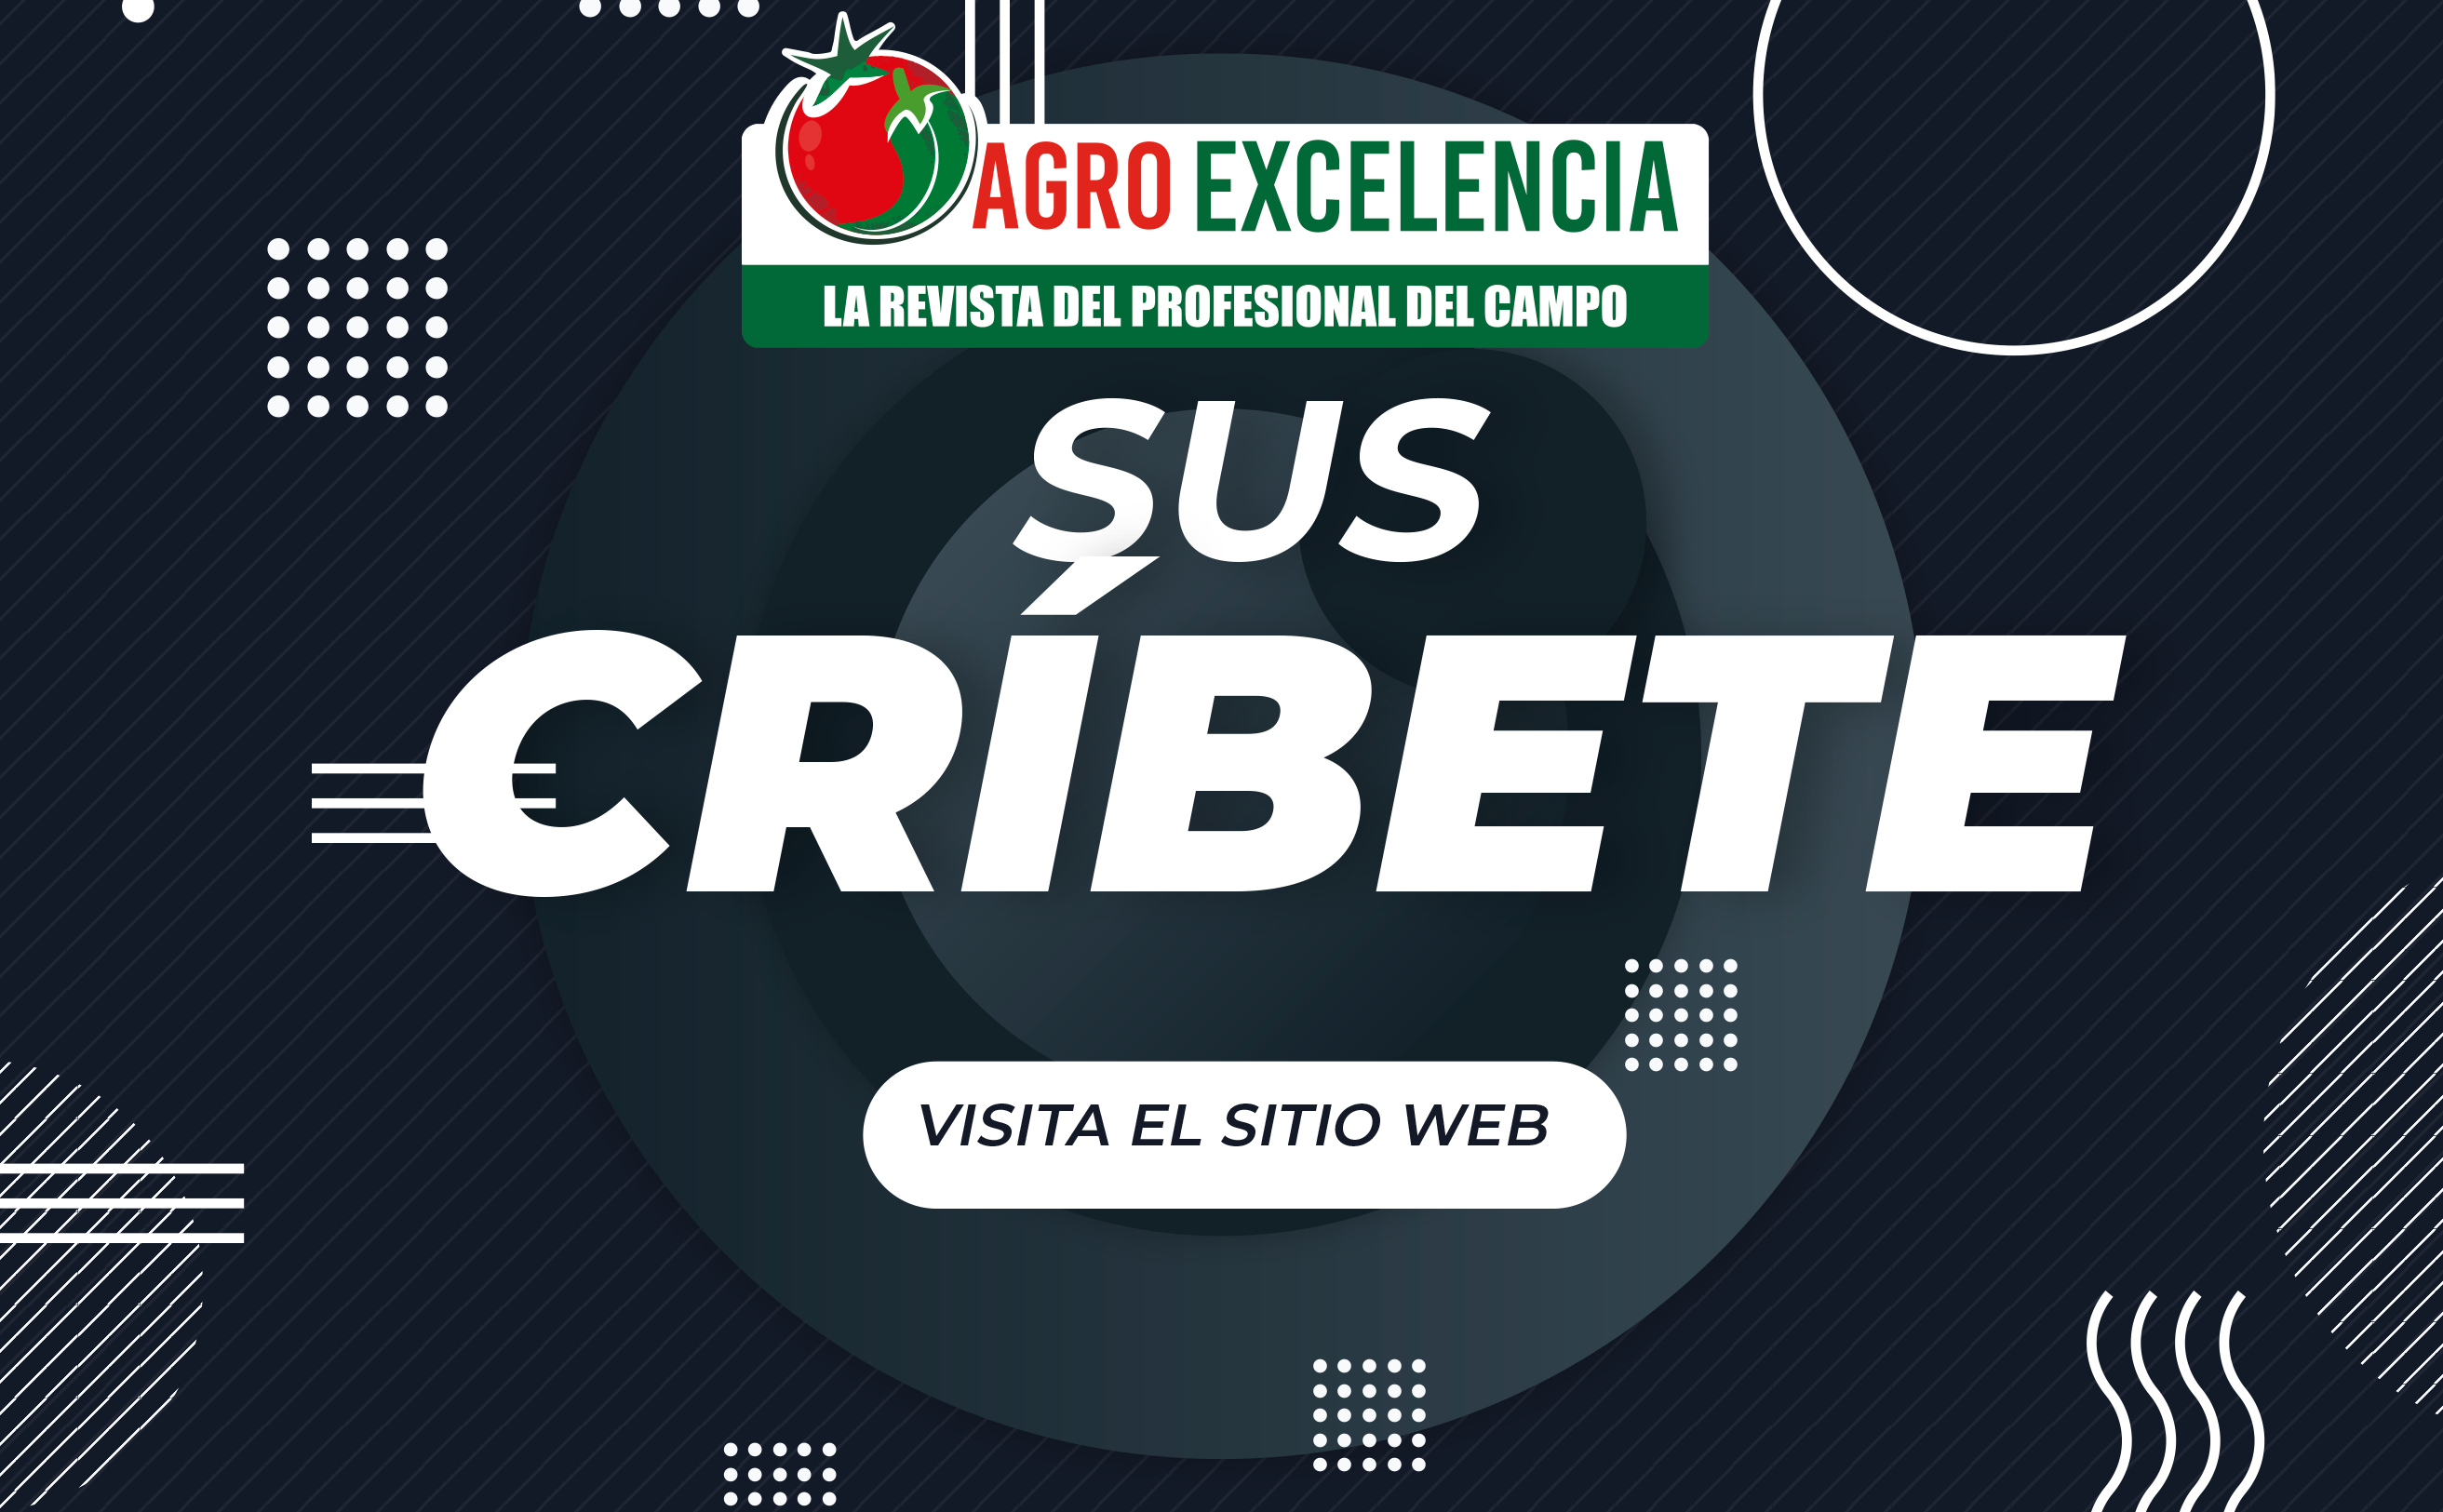 https://agroexcelencia.com/wp-content/uploads/2020/04/1-2.png